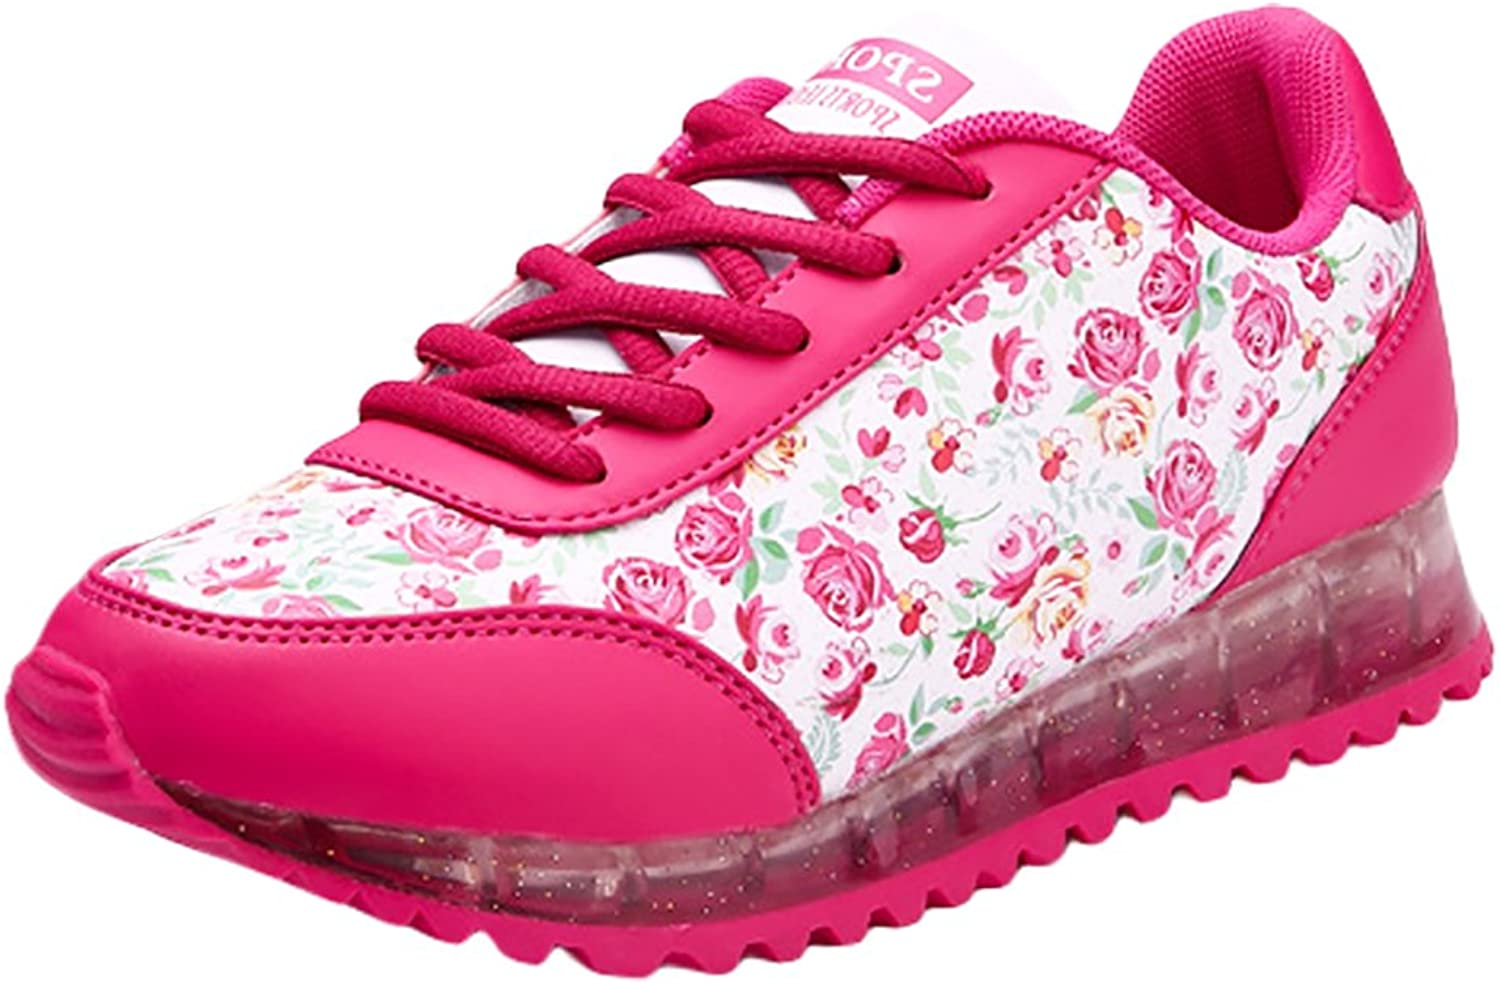 Amurleopard Women pinks Jelly shoes 7 color USB Charge LED Flashing Lights Sneaker Sports shoes